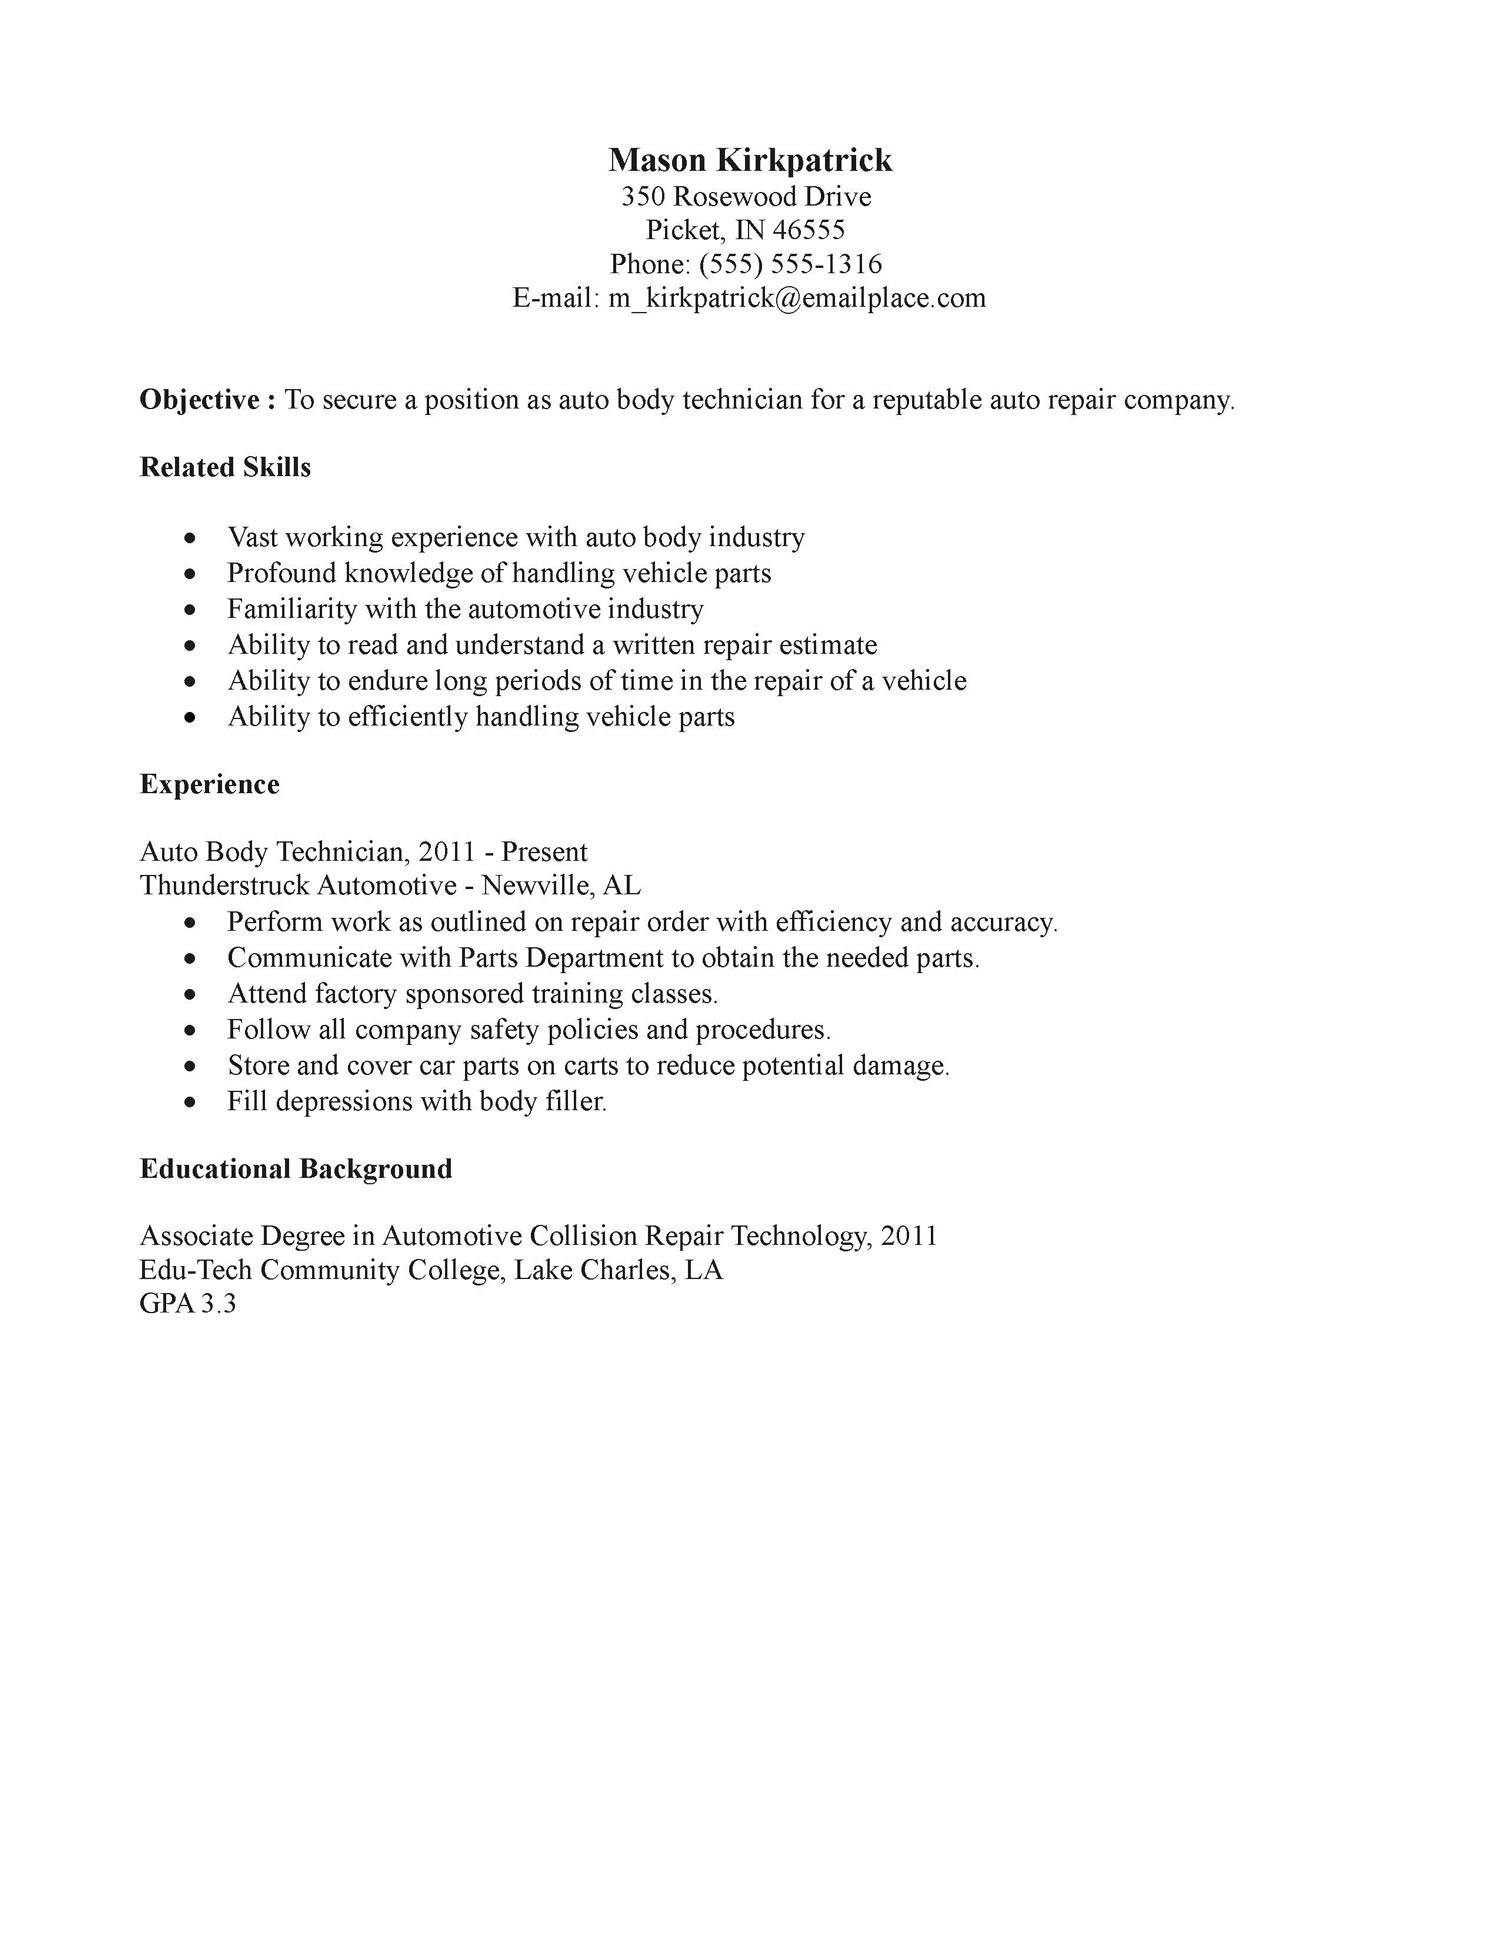 resume sample auto mechanic objective examples automotive industry body technician entry Resume Sample Resume Automotive Industry